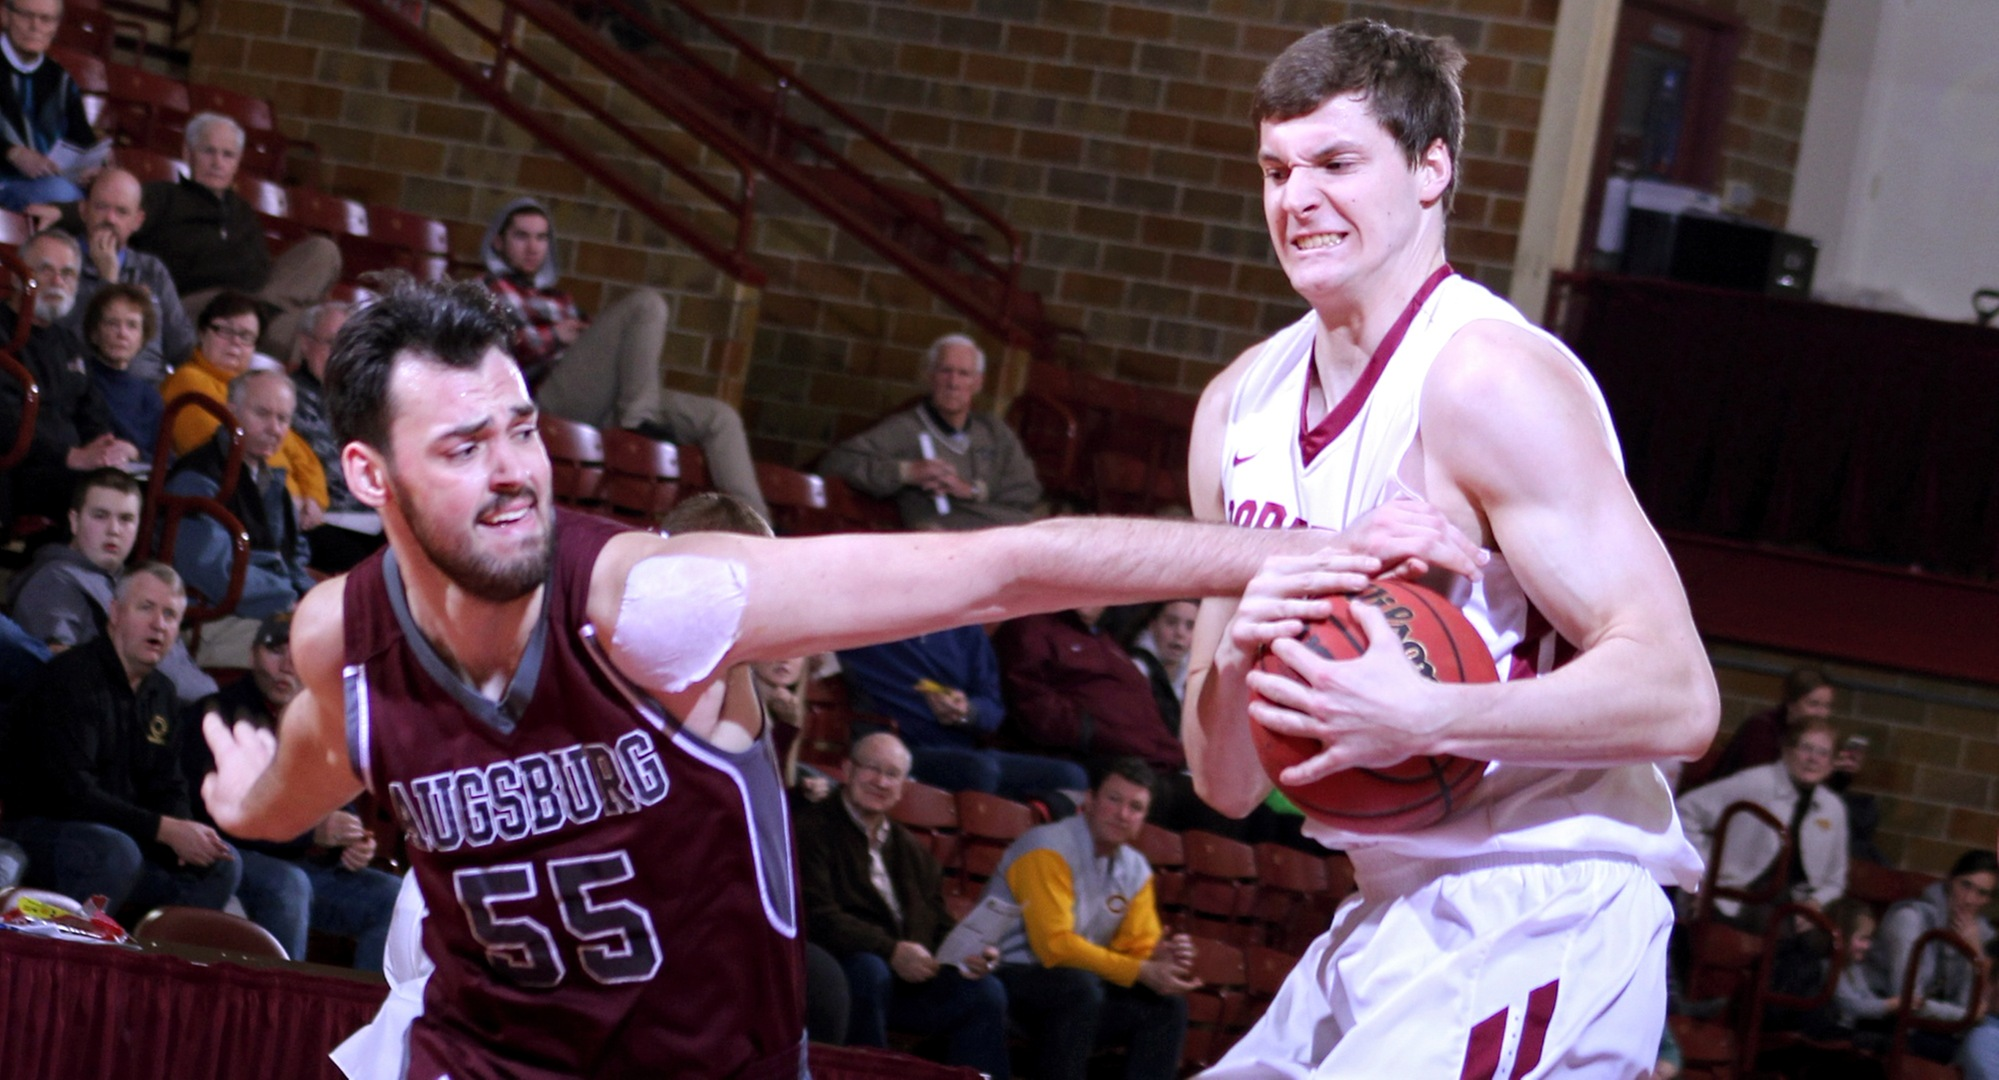 Junior Kevin Wolfe grabs a rebound away from an Augsburg player during the Cobbers' win over Auggies. Wolfe finished with seven points.